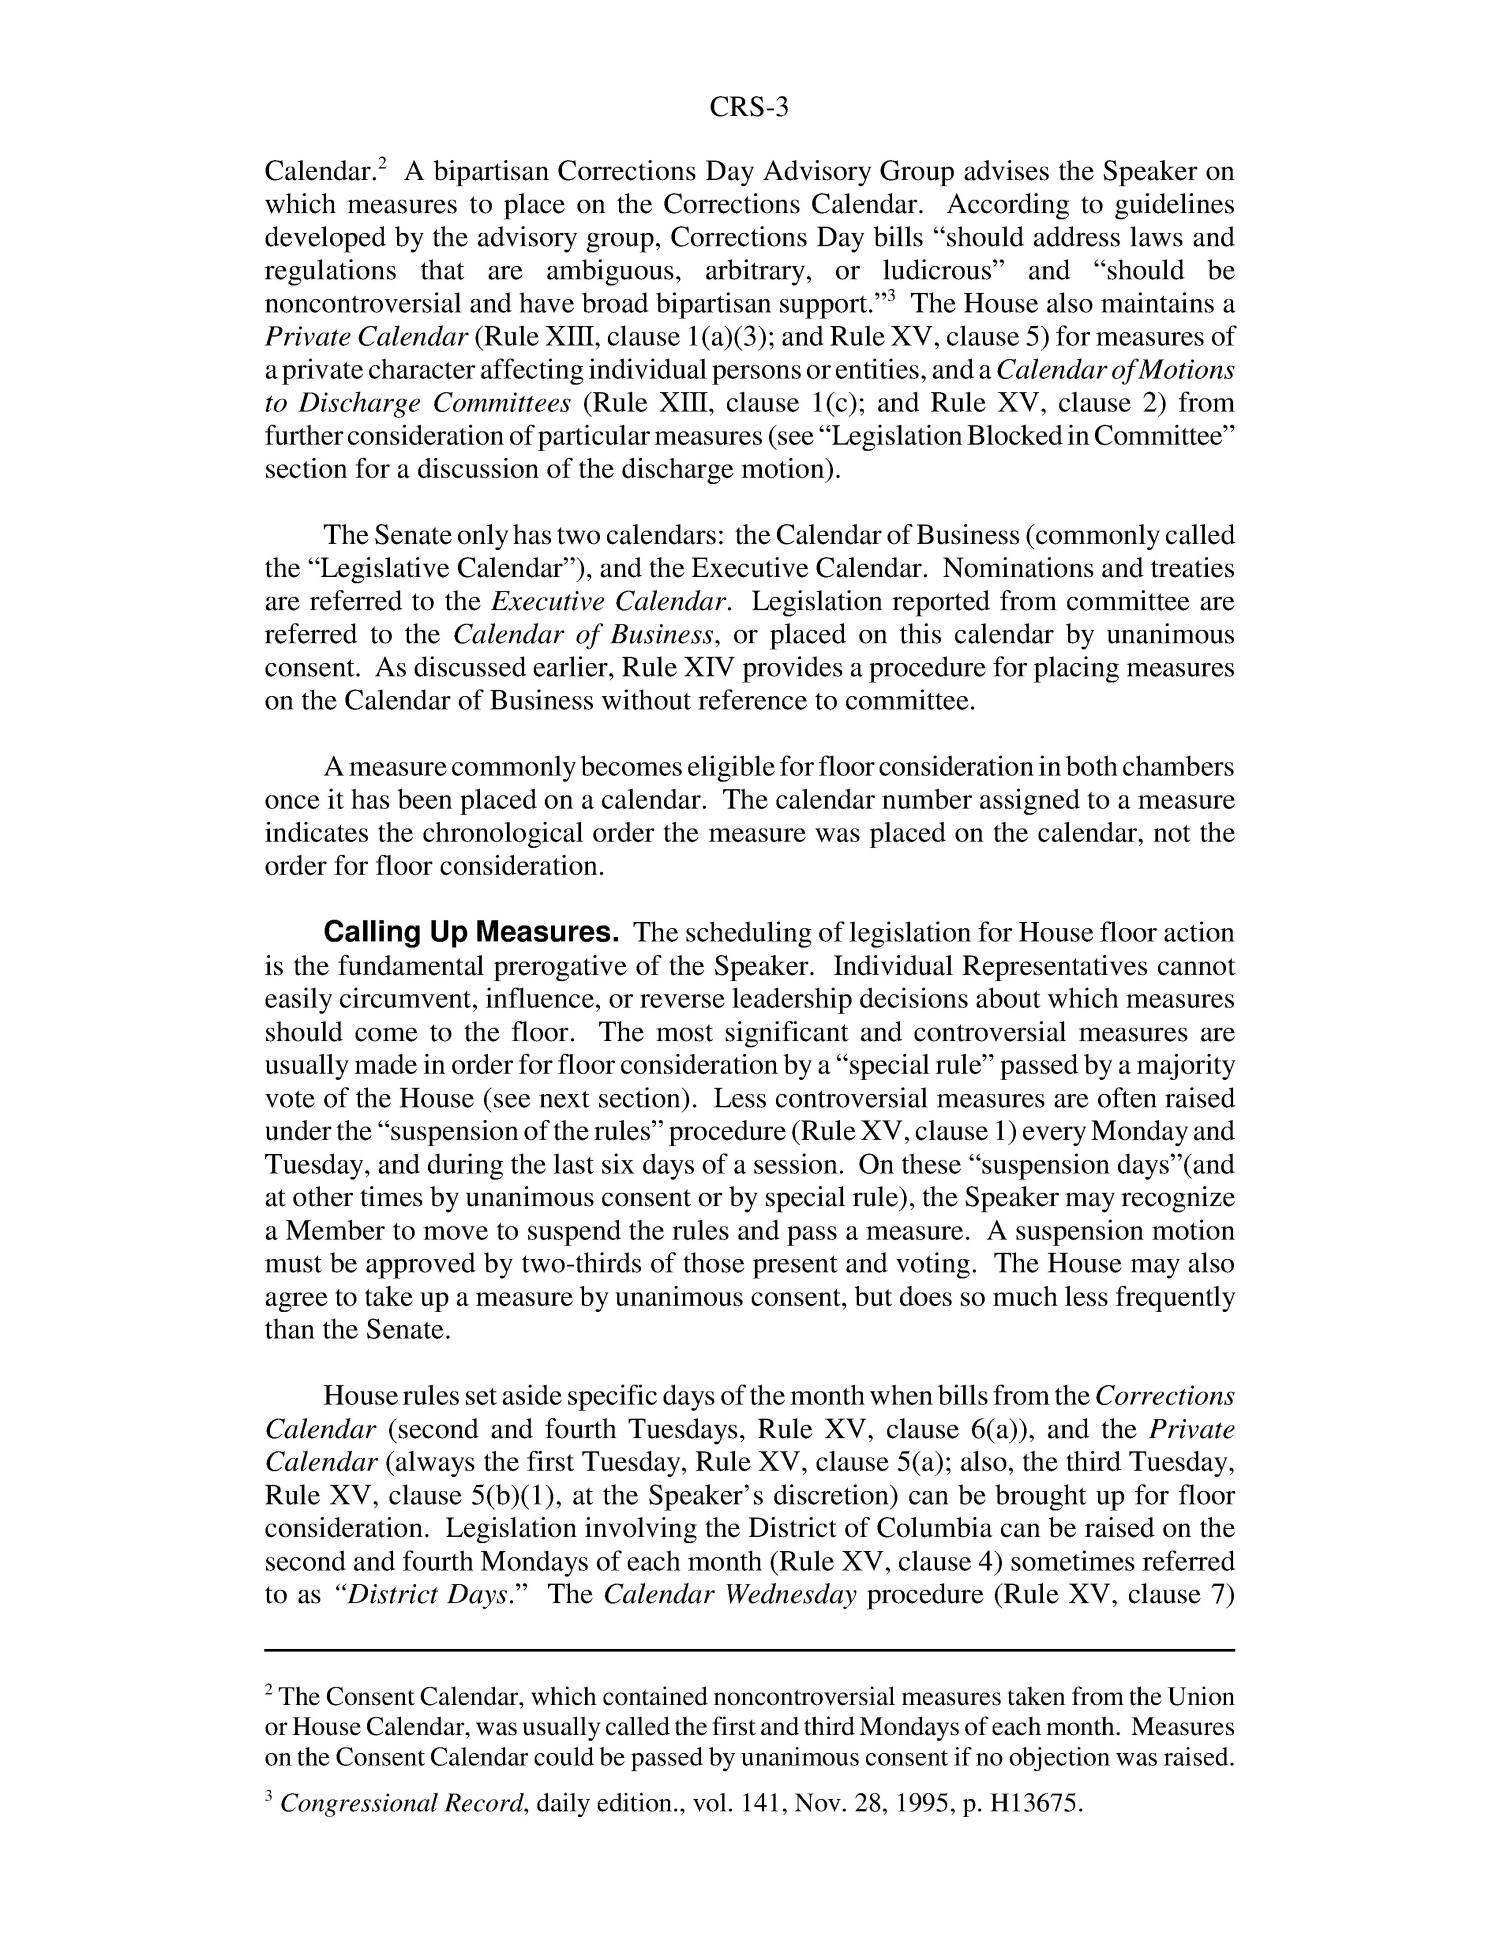 House And Senate Rules Of Procedure A Comparison Page 6 Of 16